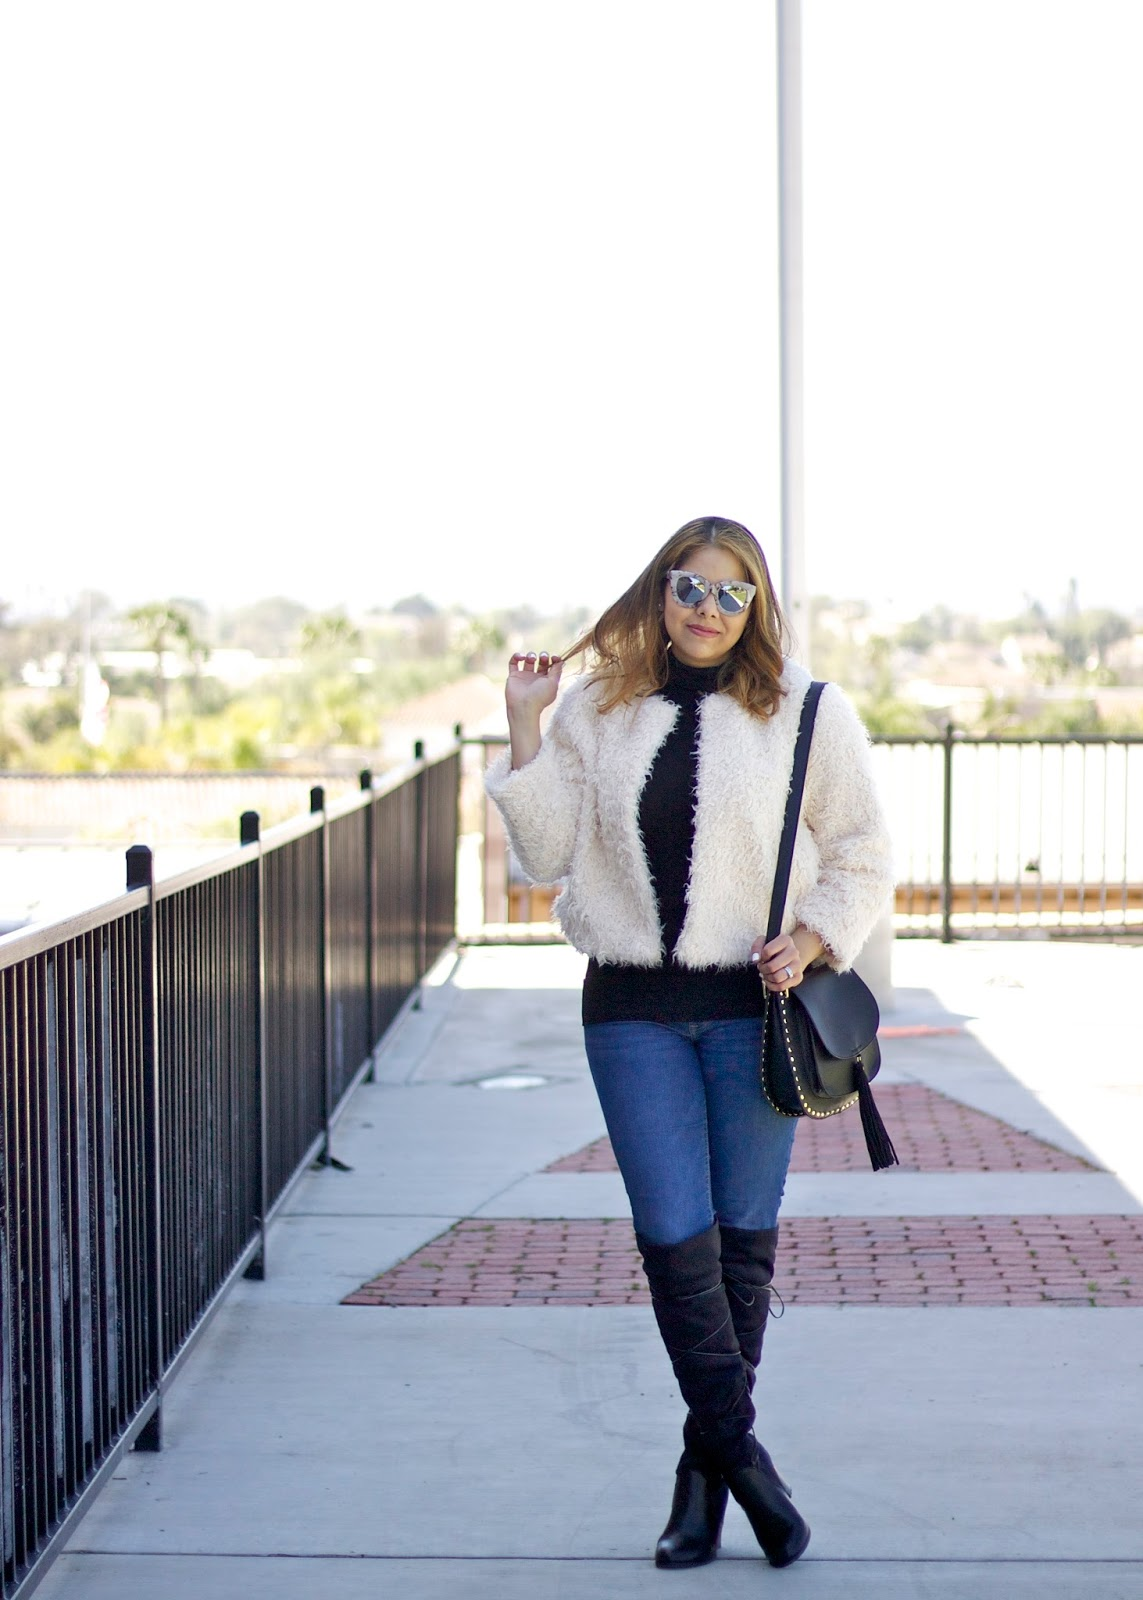 how to wear over the knee boots, how to wear a textured jacket, cold weather chic outfit, black turtleneck outfit